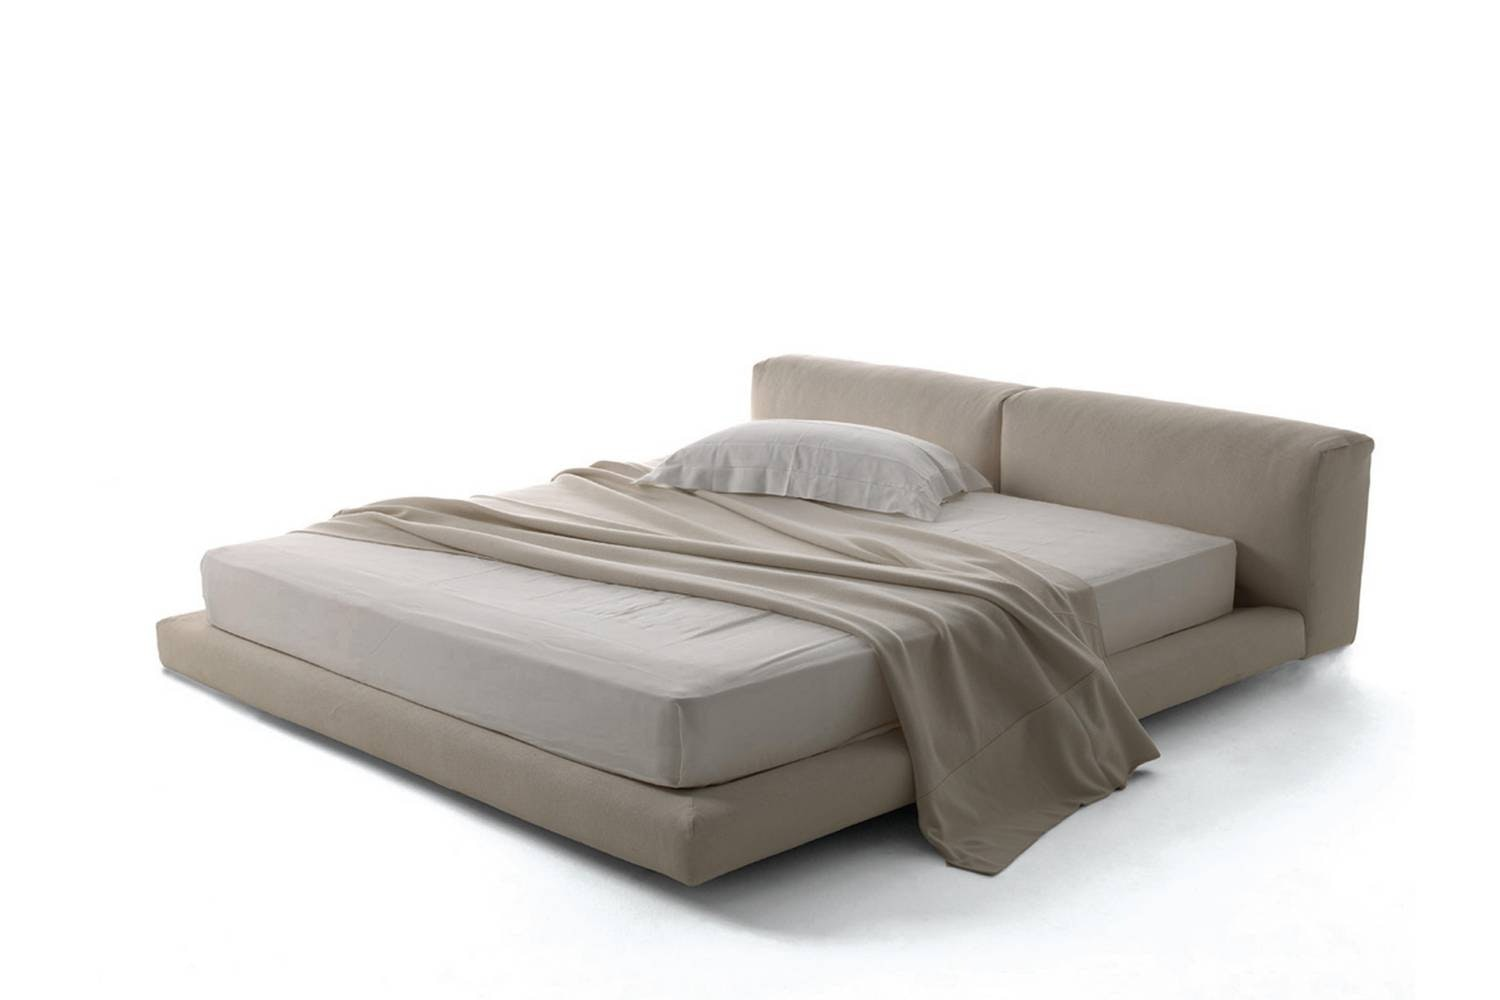 Softwall Bed by Piero Lissoni for Living Divani